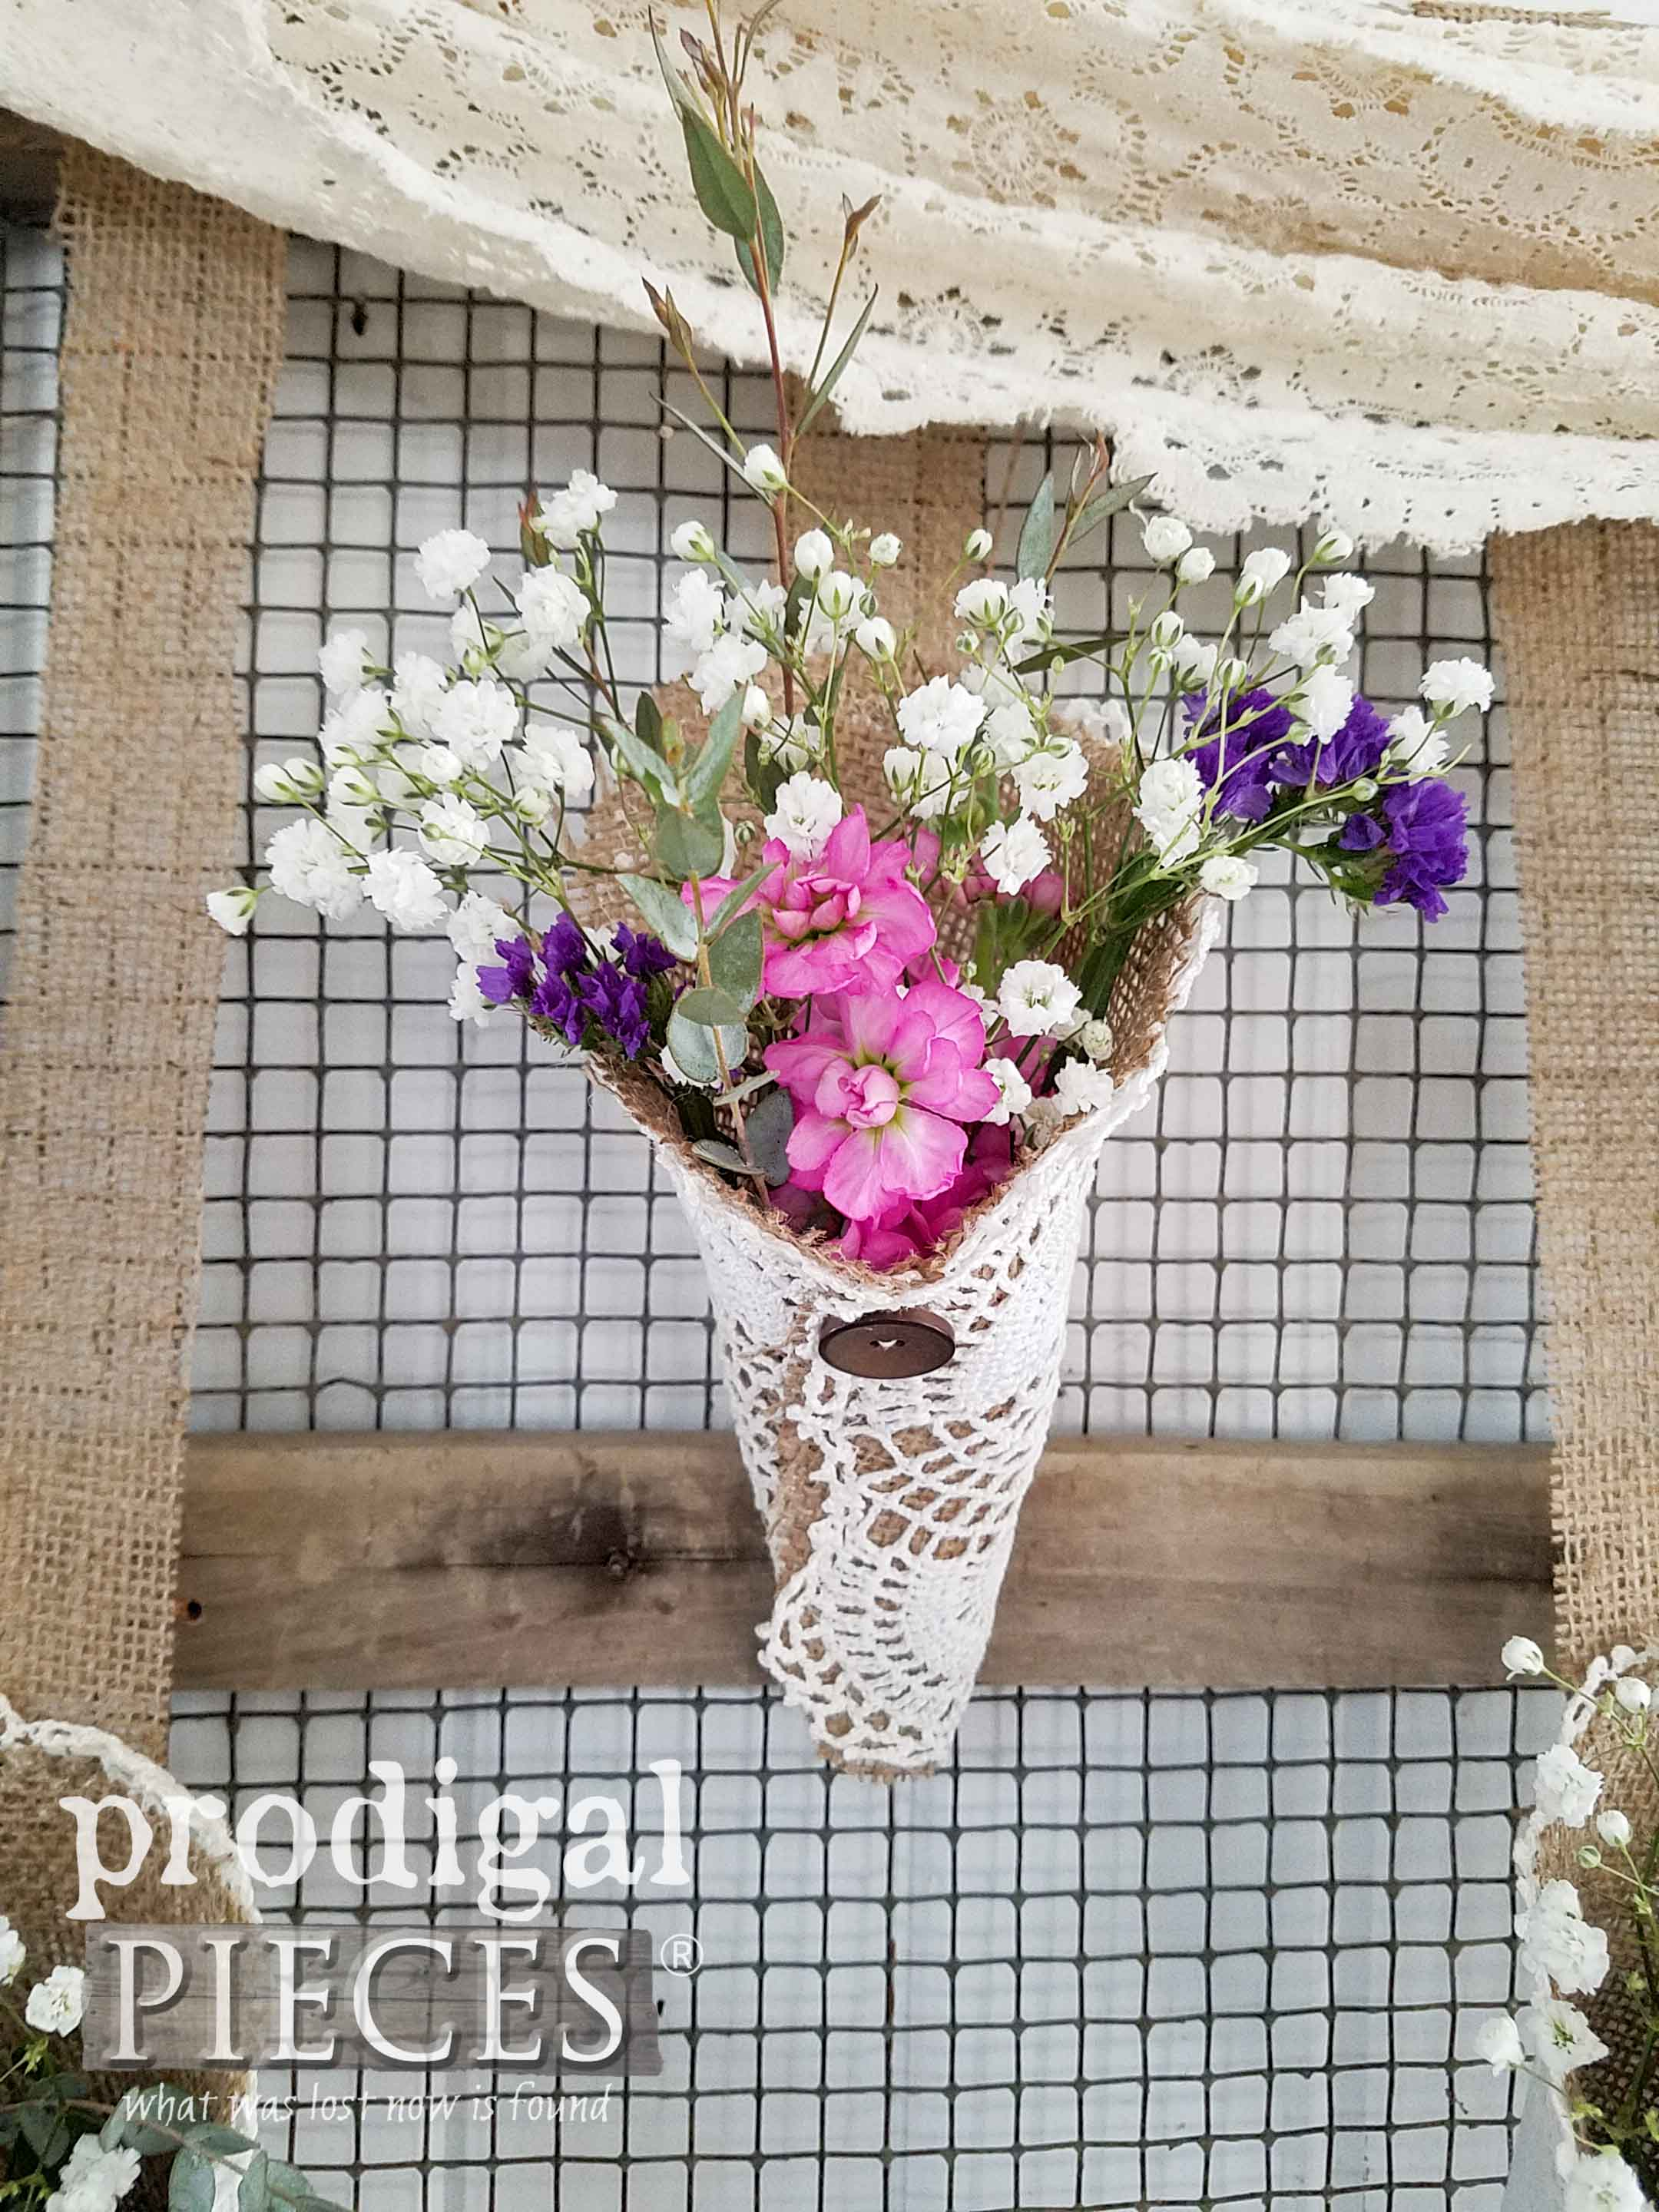 Burlap and Doily Cone of Flowers for Rustic Farmhouse Wall Art by Larissa of Prodigal Pieces | prodigalpieces.com